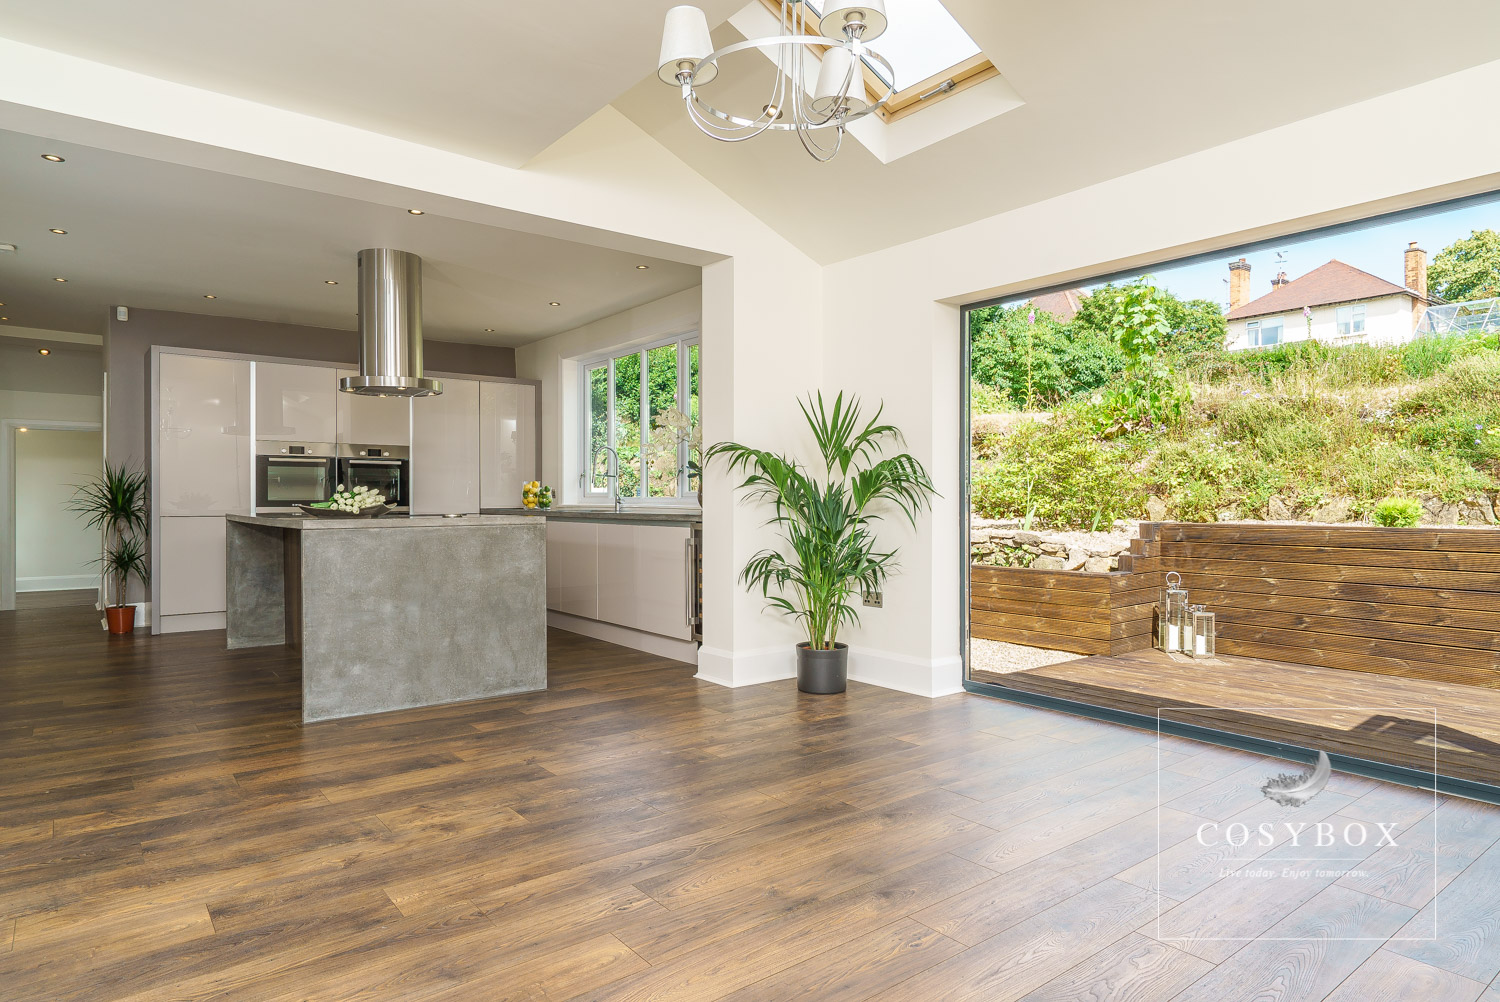 Kitchen and dining area with rear terrace